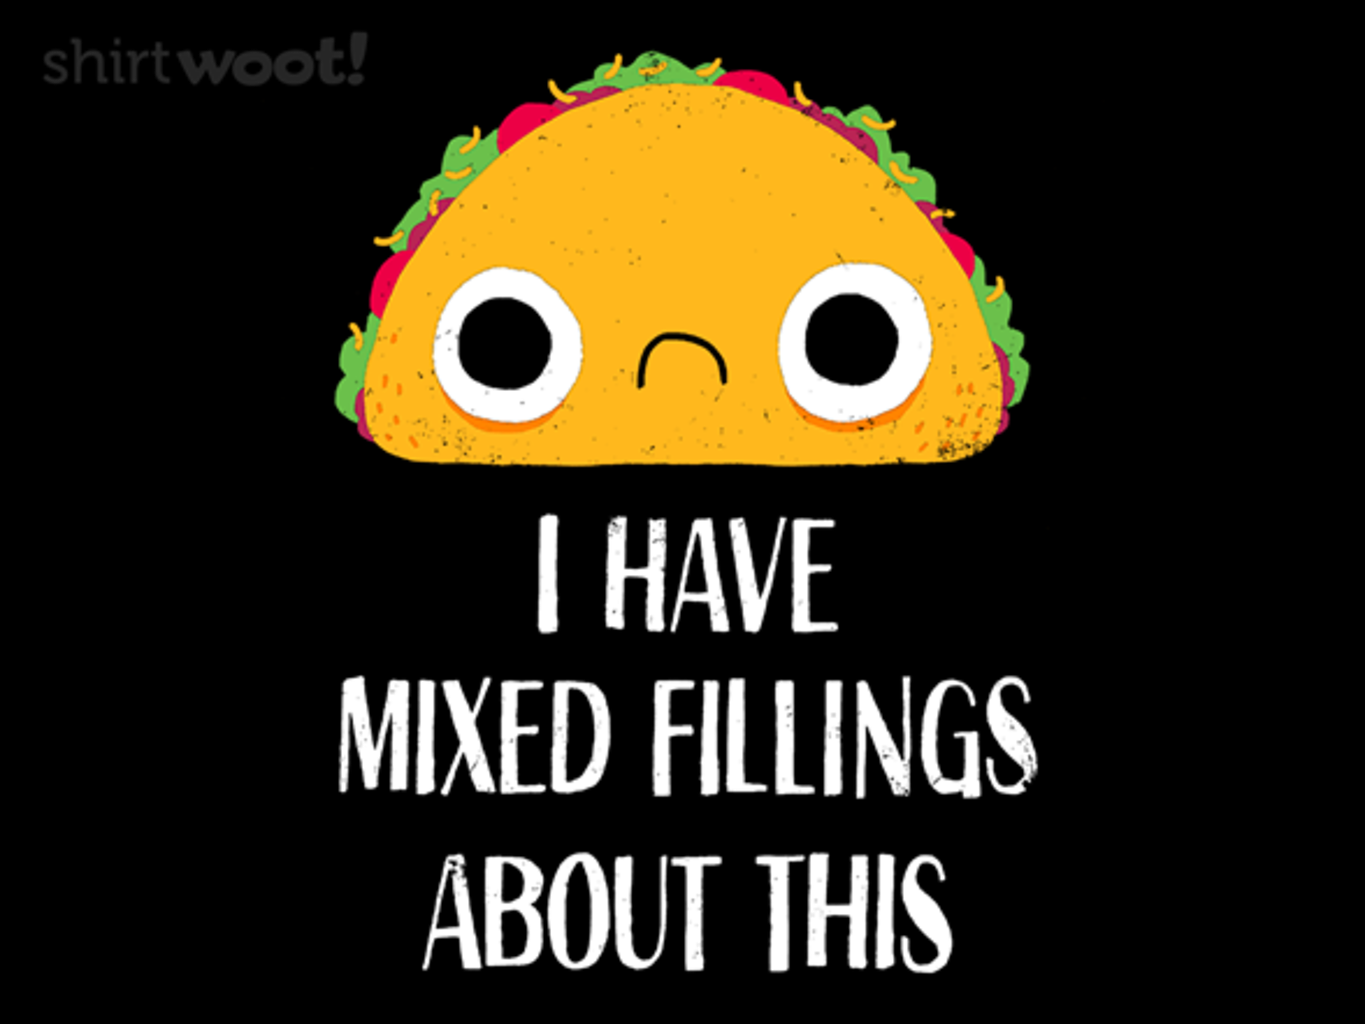 Woot!: Mixed Fillings